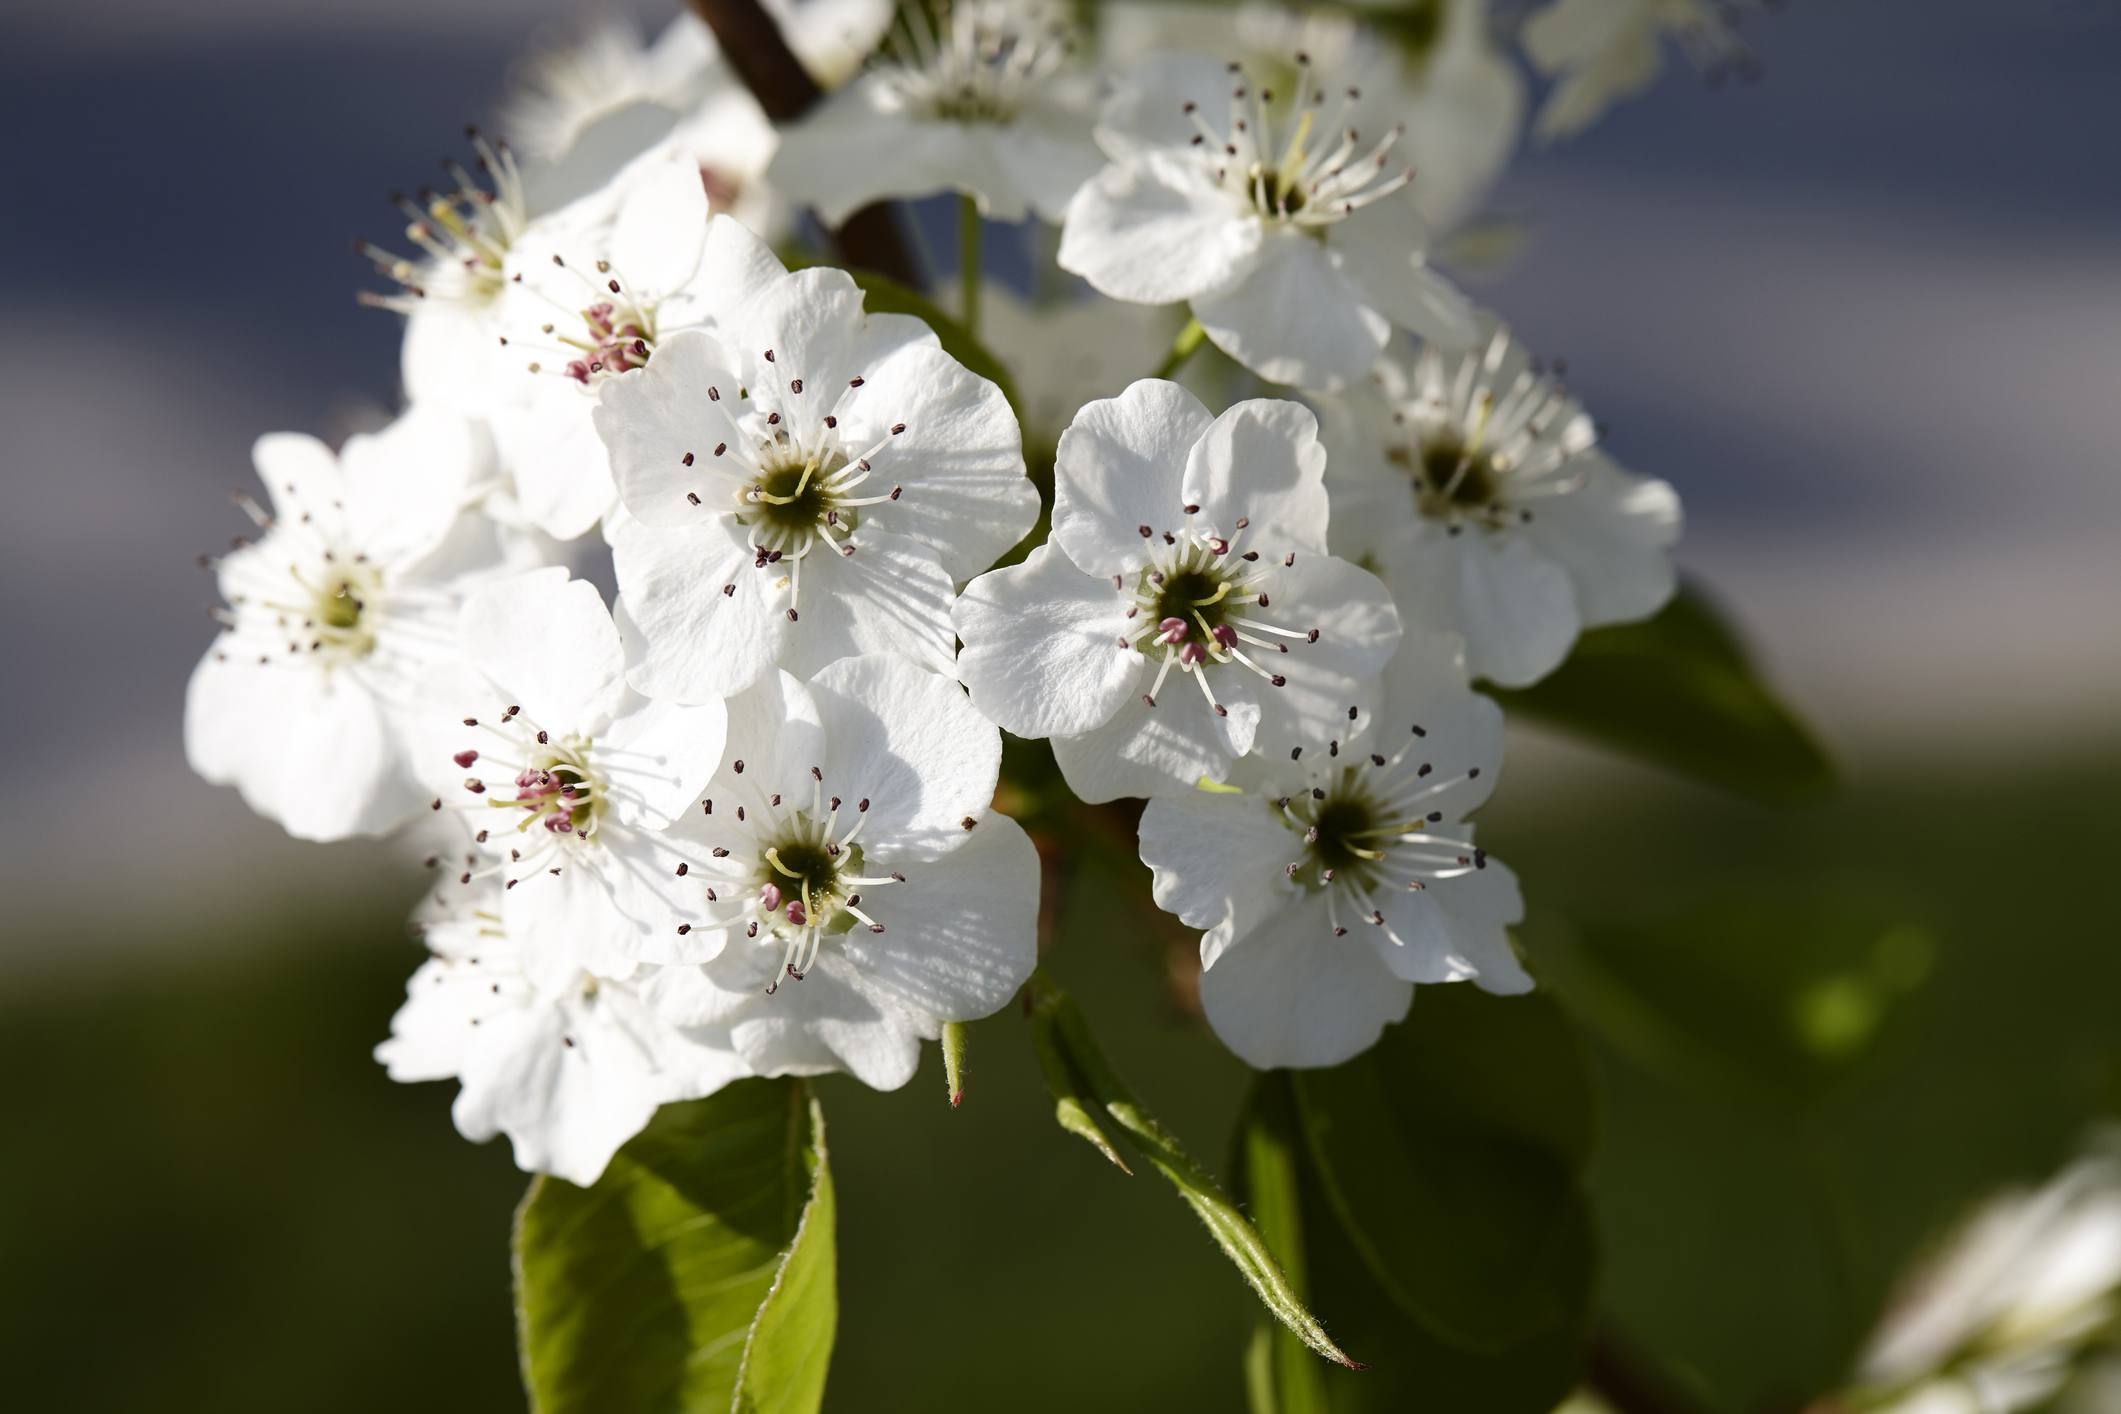 Close-up of Callery pear tree blossom